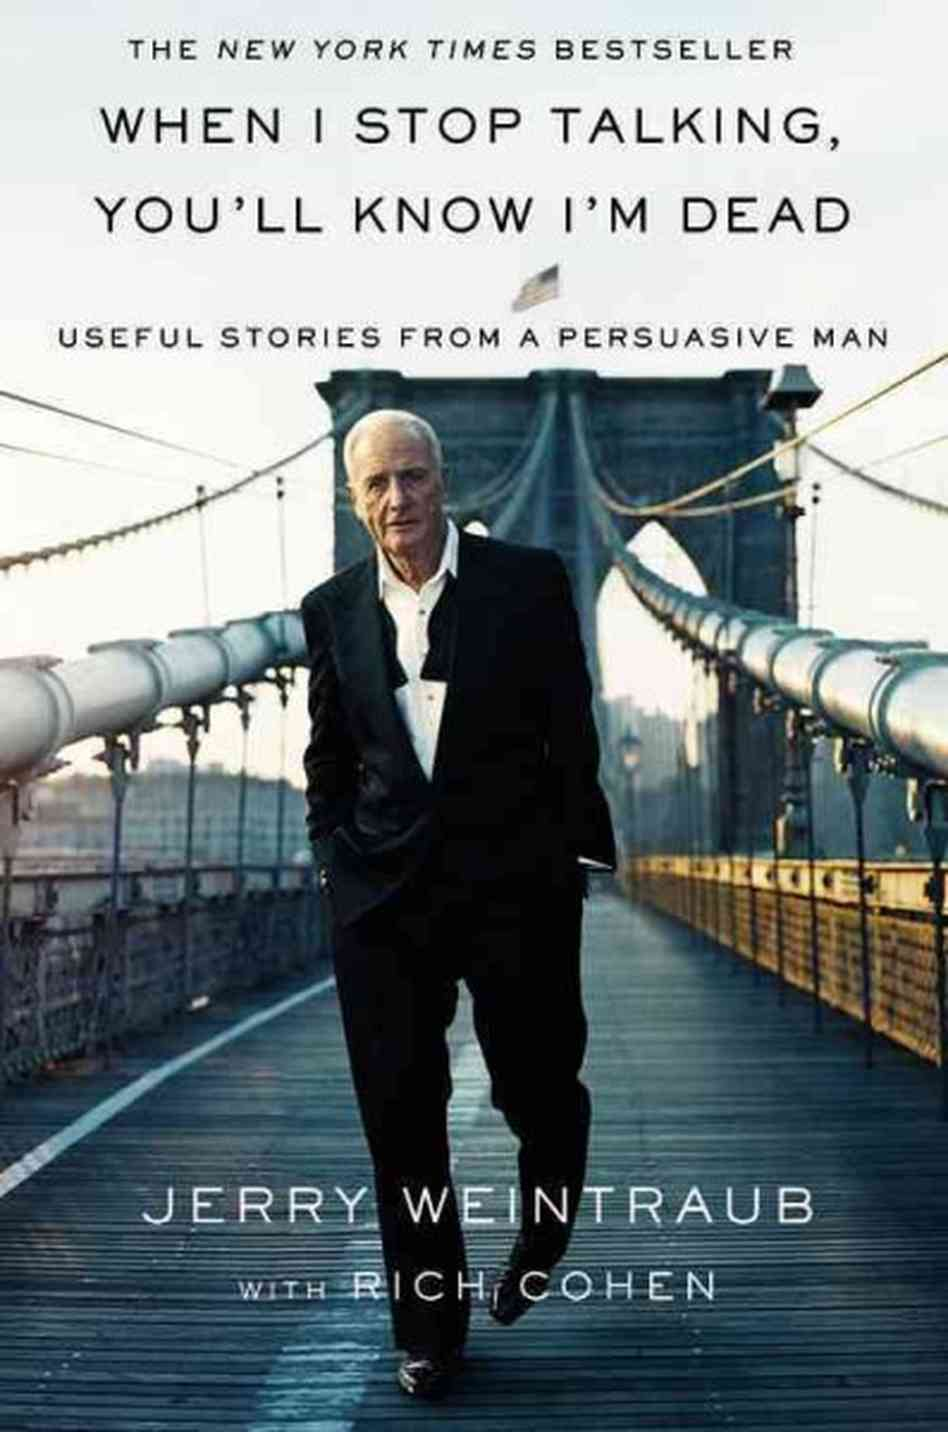 When I Stop Talking, You'll Know I'm Dead by Jerry Weintraub